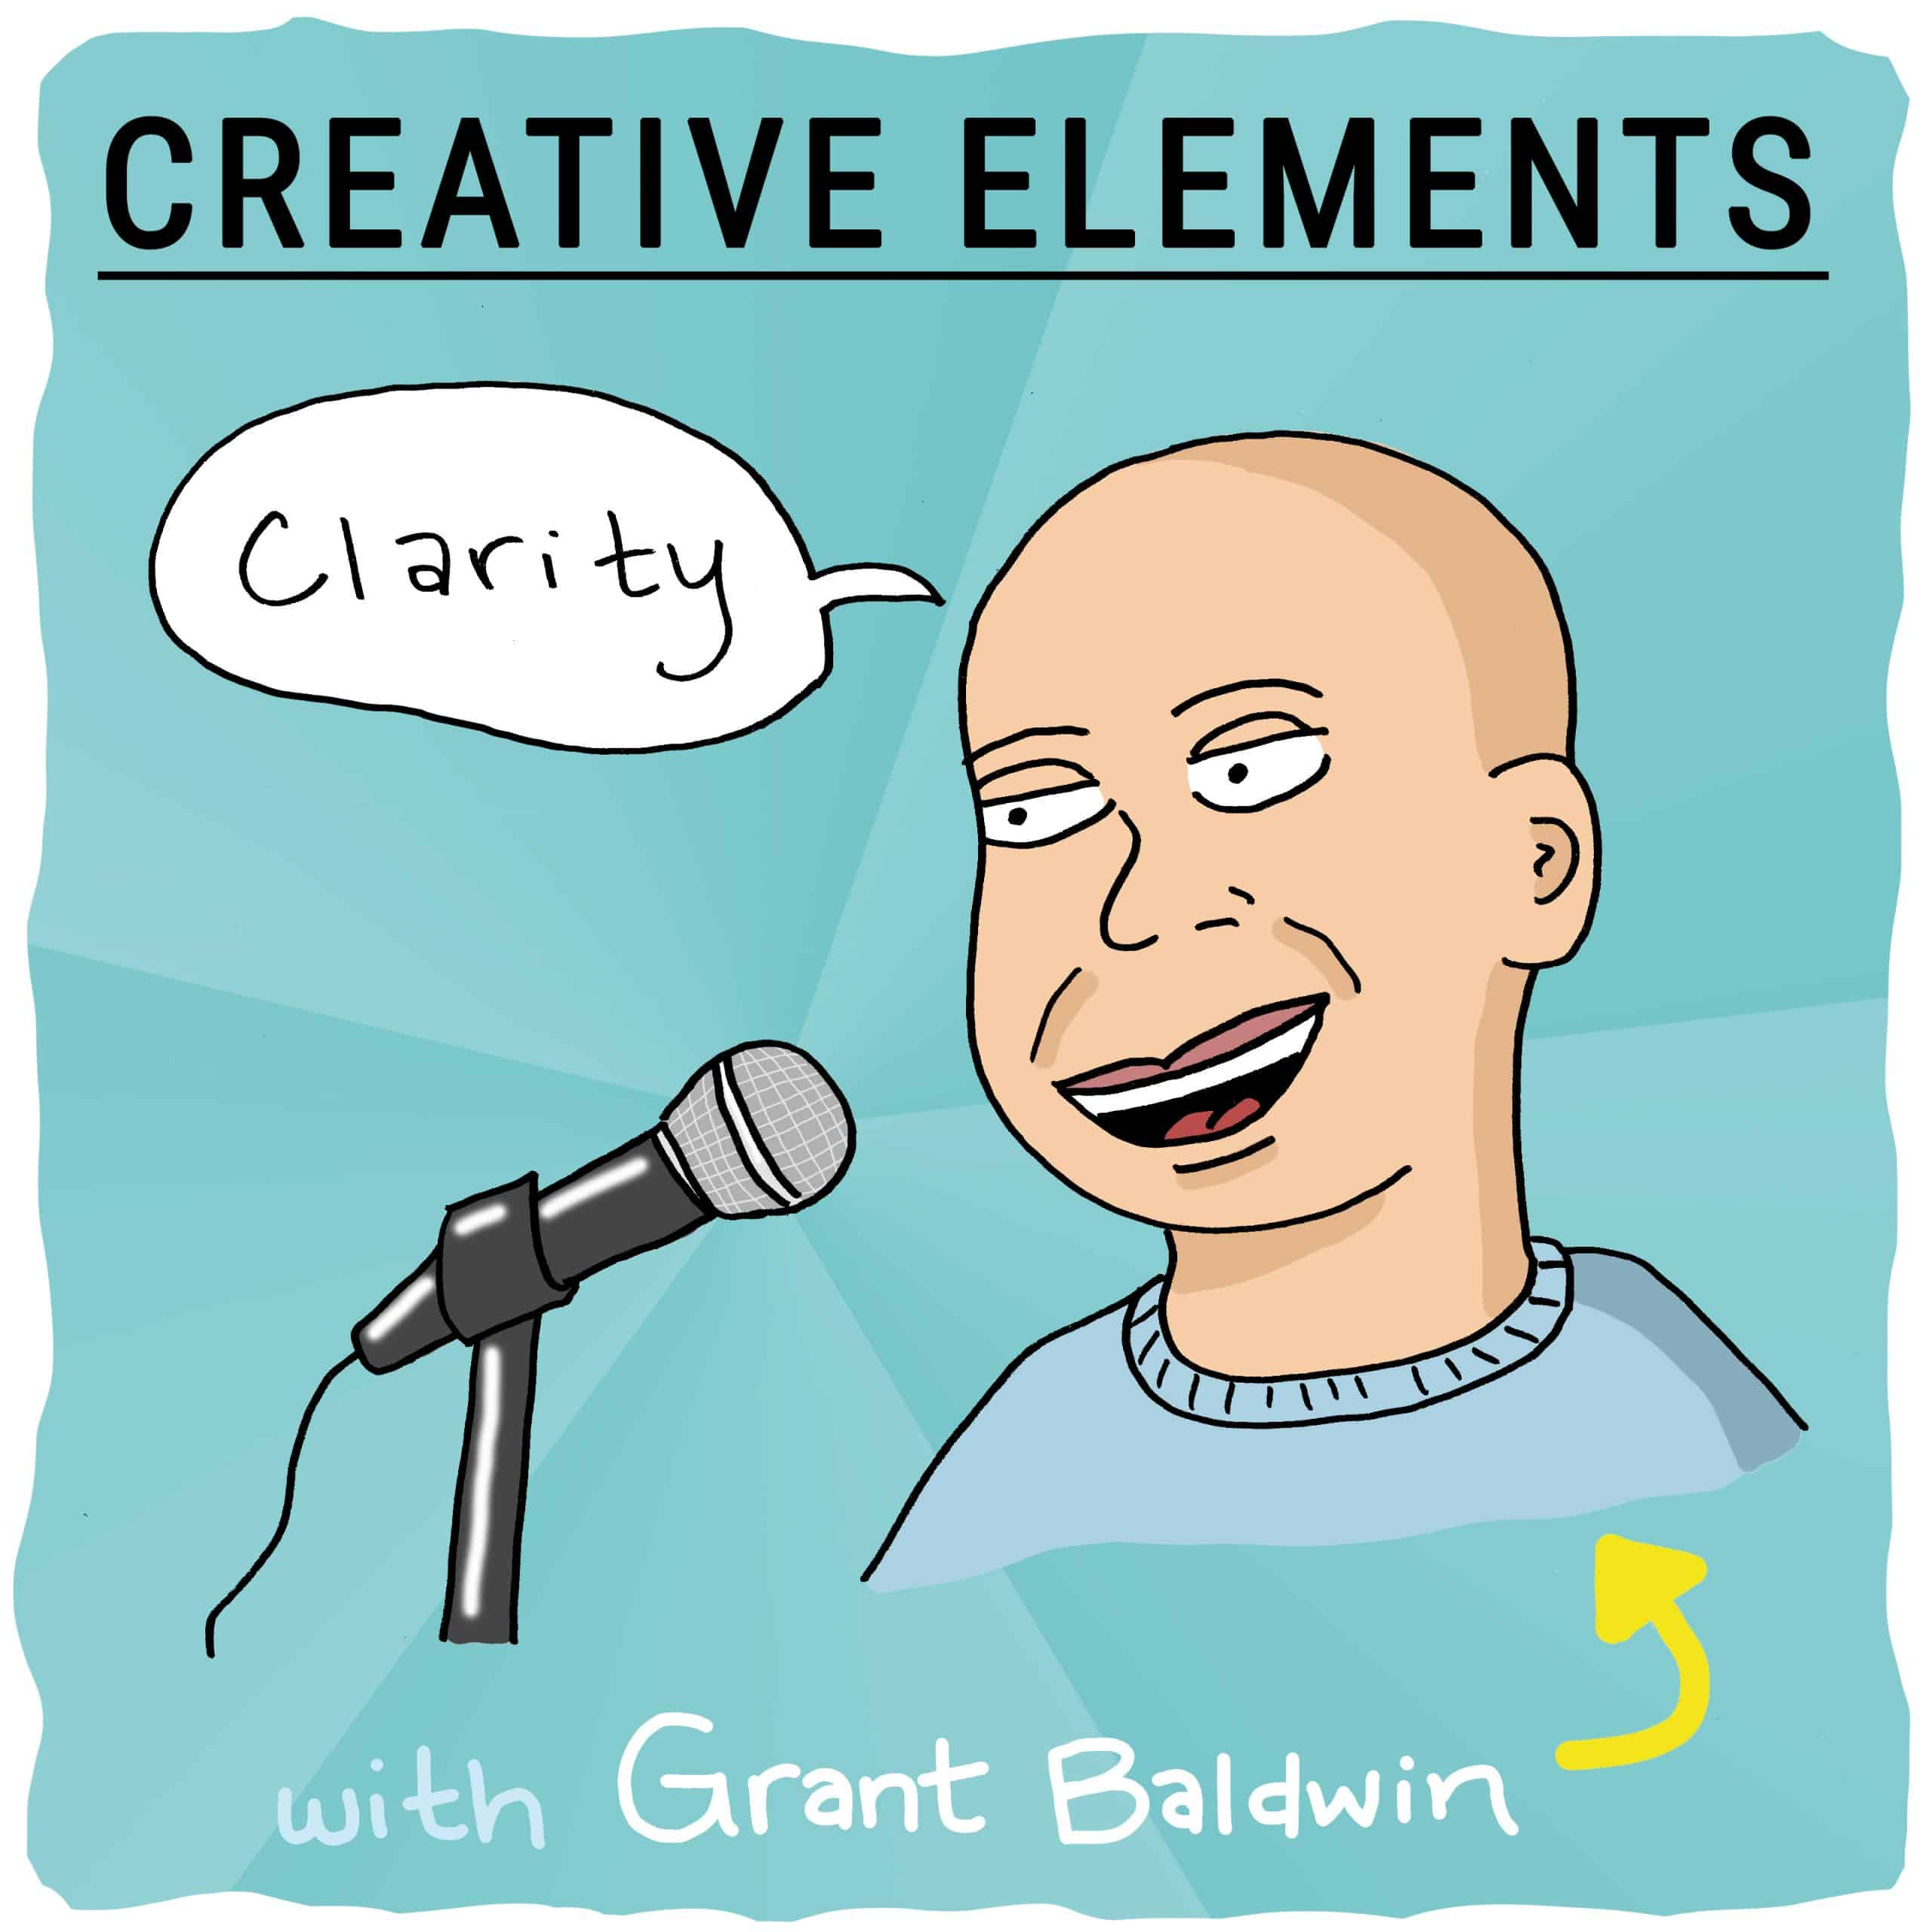 Grant Baldwin on Creative Elements